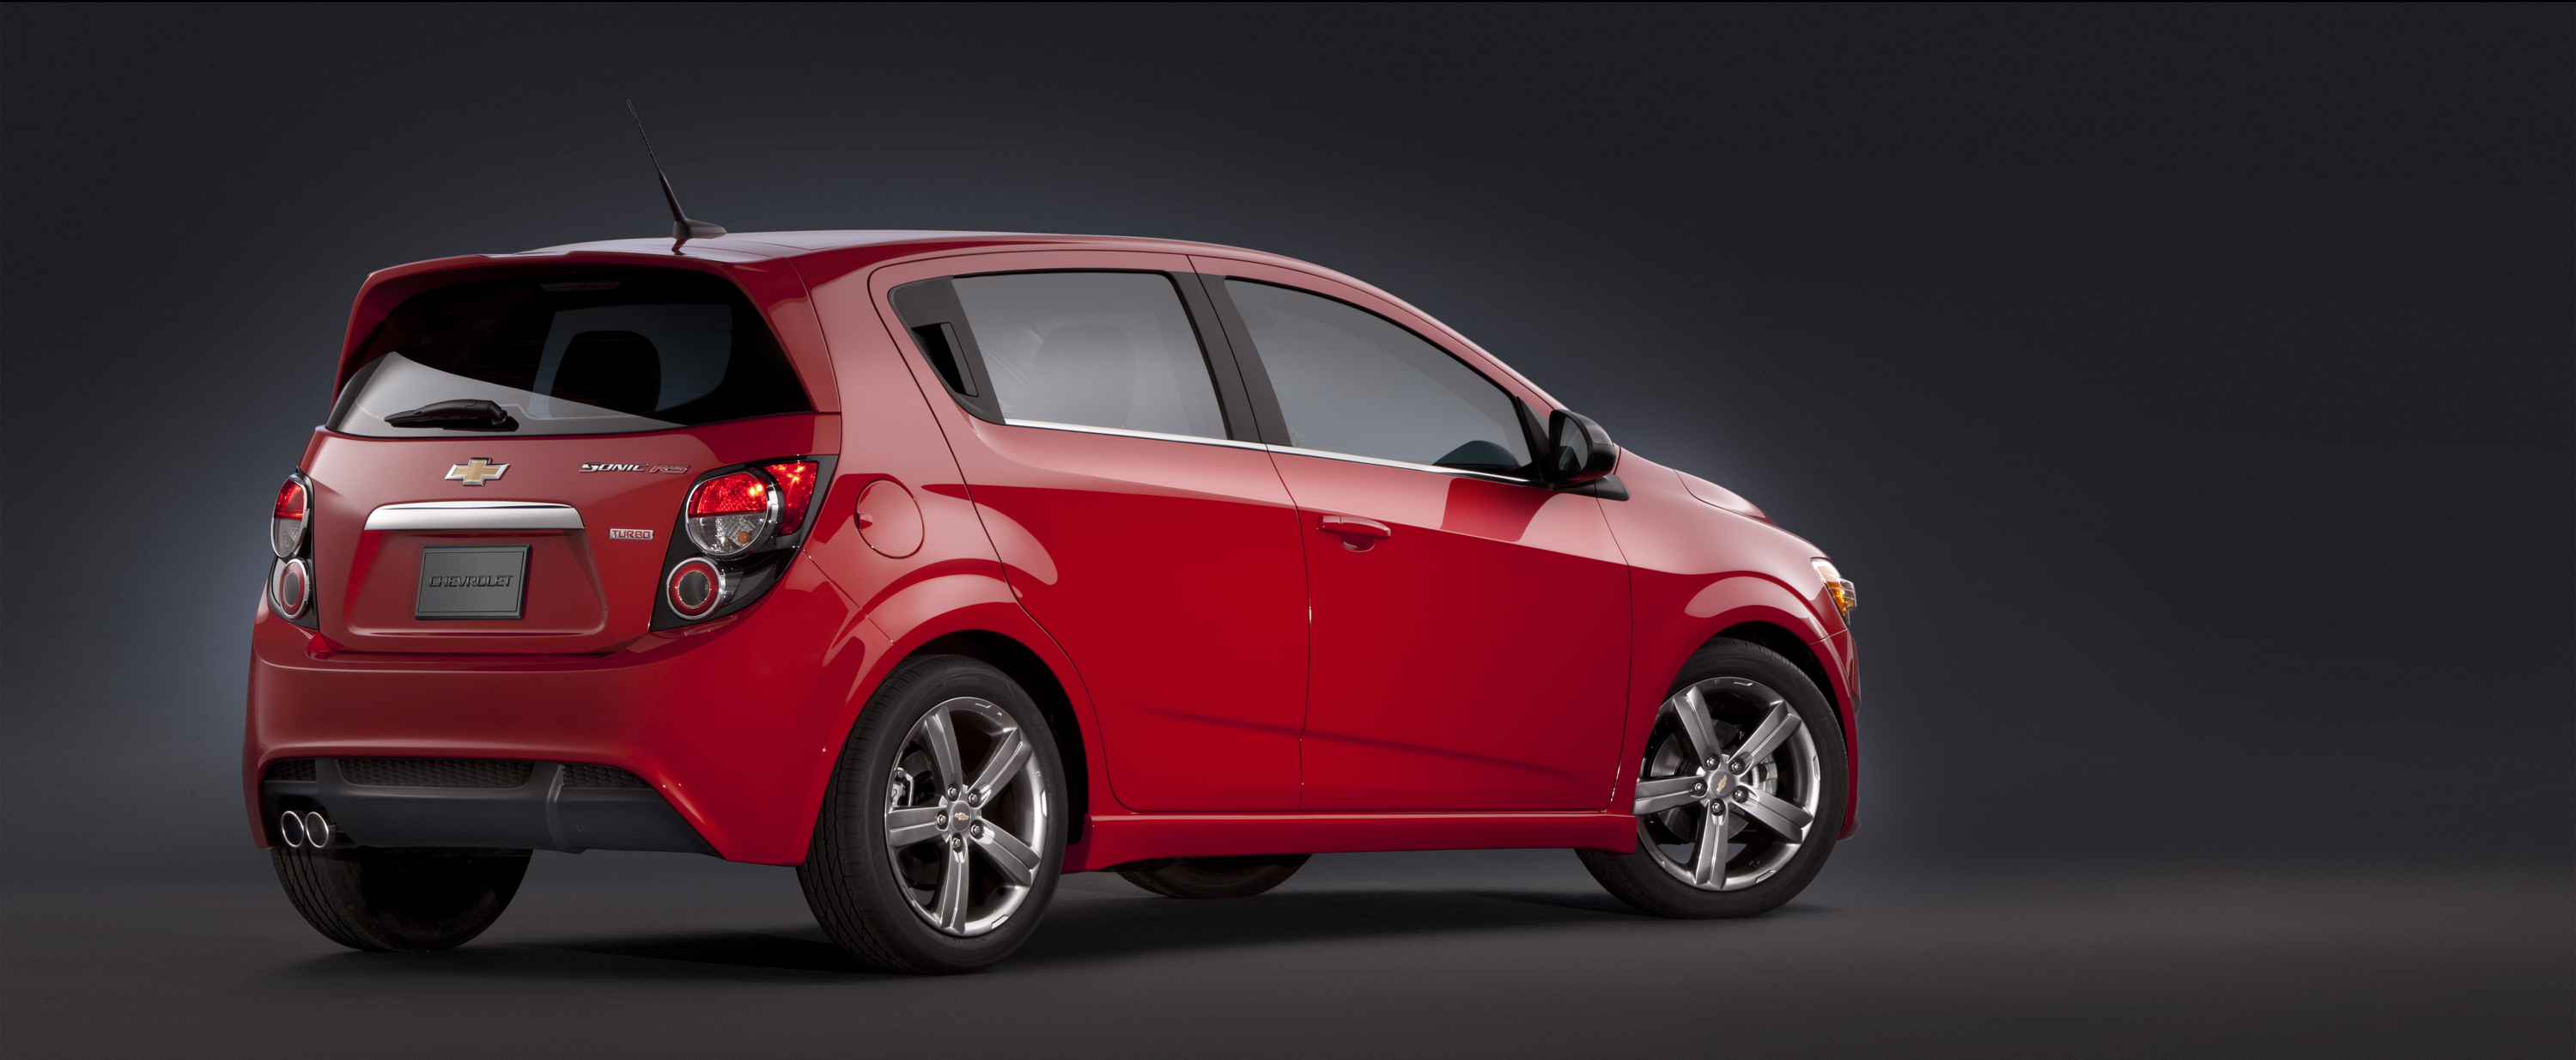 chevrolet rs lacrosse also xts buick cadillac updated hatch news parked hatchback sonic